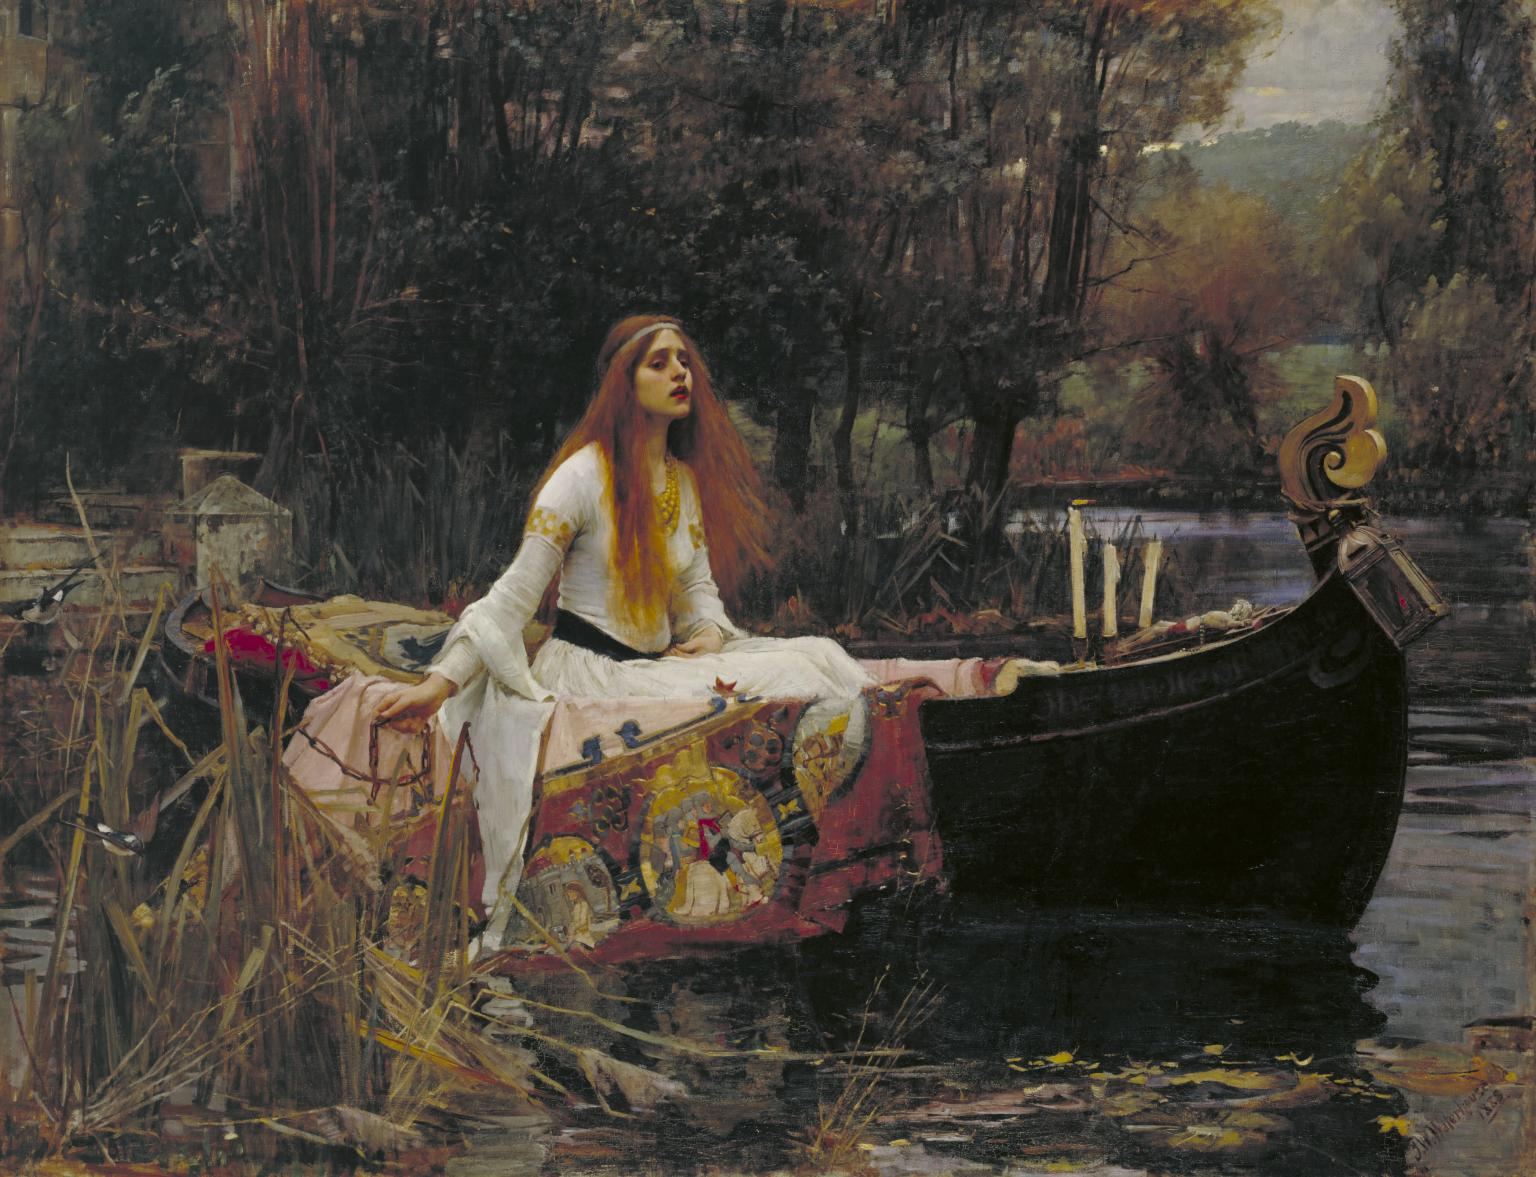 John William Waterhouse, La dama di Shalott (1888; olio su tela, 153 x 200 cm; Londra, Tate Britain)